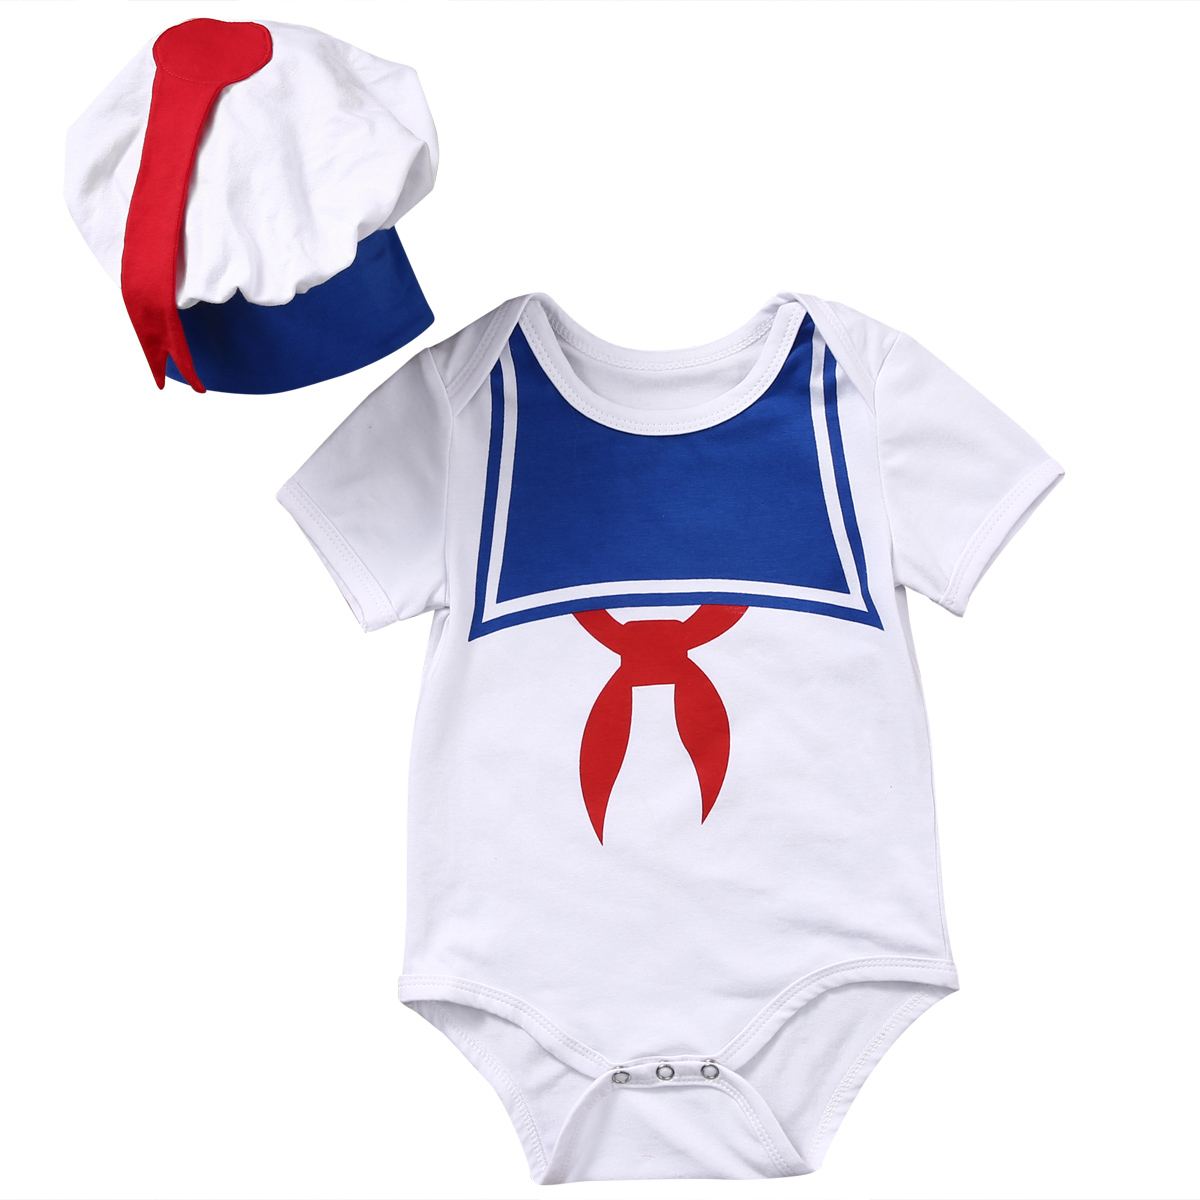 2pcs Newborn Baby Boys Girls Clothes Cute Short Sleeve Navy Romper Jumpsuit Sun suit+ Hat Baby Sailor Outfits Set Baby Romper puseky 2017 infant romper baby boys girls jumpsuit newborn bebe clothing hooded toddler baby clothes cute panda romper costumes